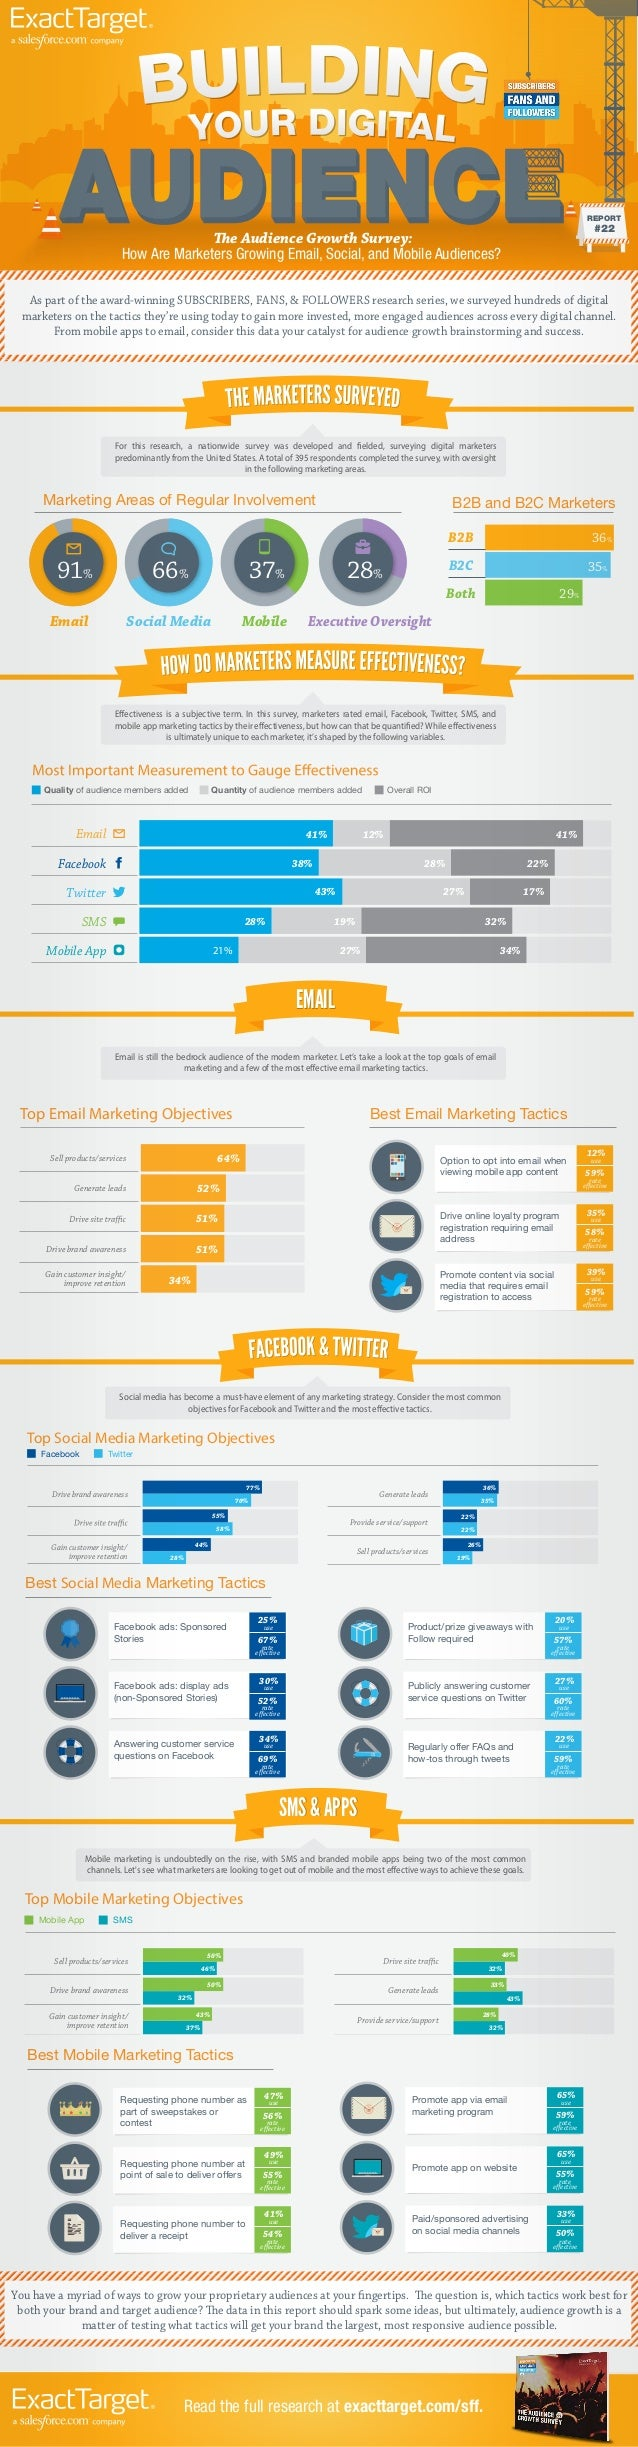 REPORT  #22  The Audience Growth Survey: How Are Marketers Growing Email, Social, and Mobile Audiences?  As part of the aw...